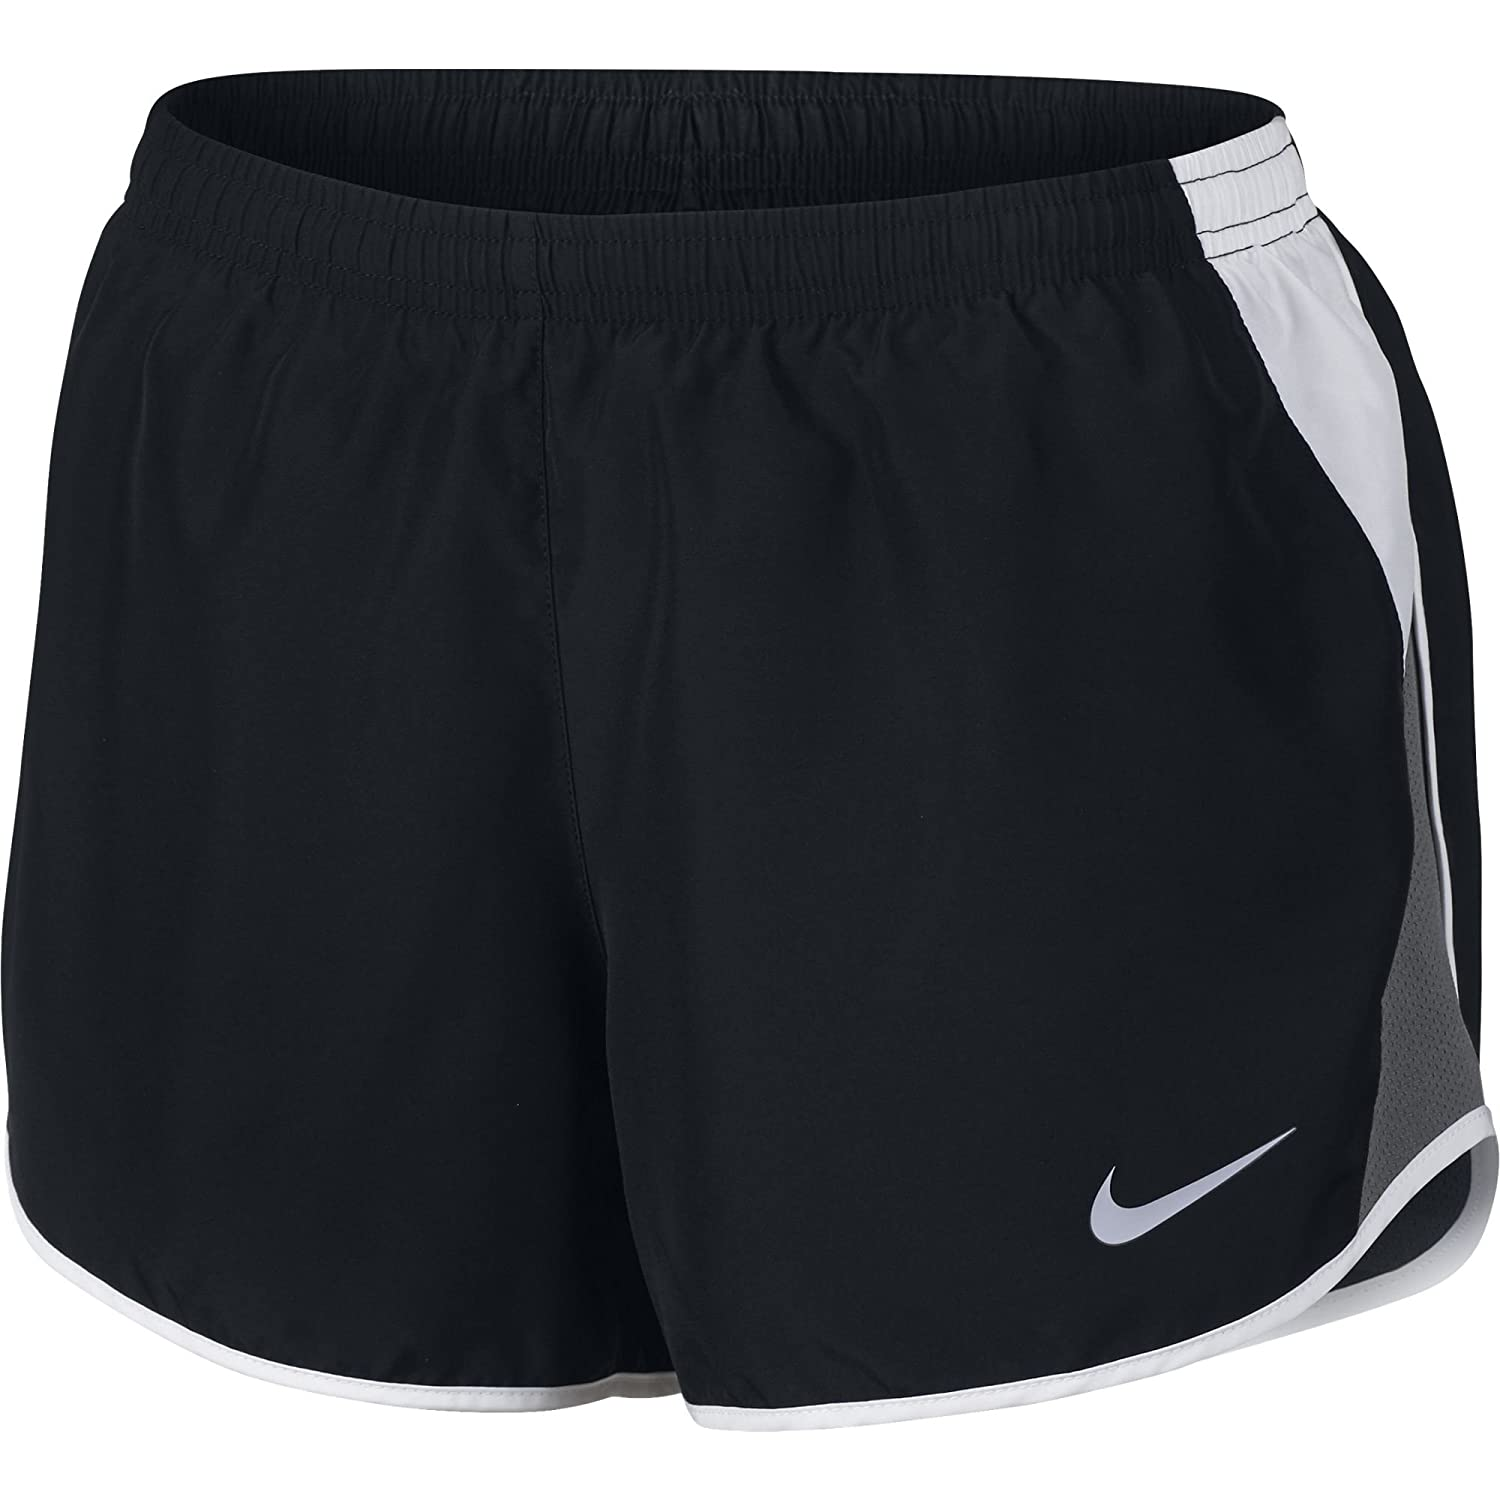 07e8e06af349a Amazon.com   NIKE Women s Dry 10K Running Shorts   Sports   Outdoors